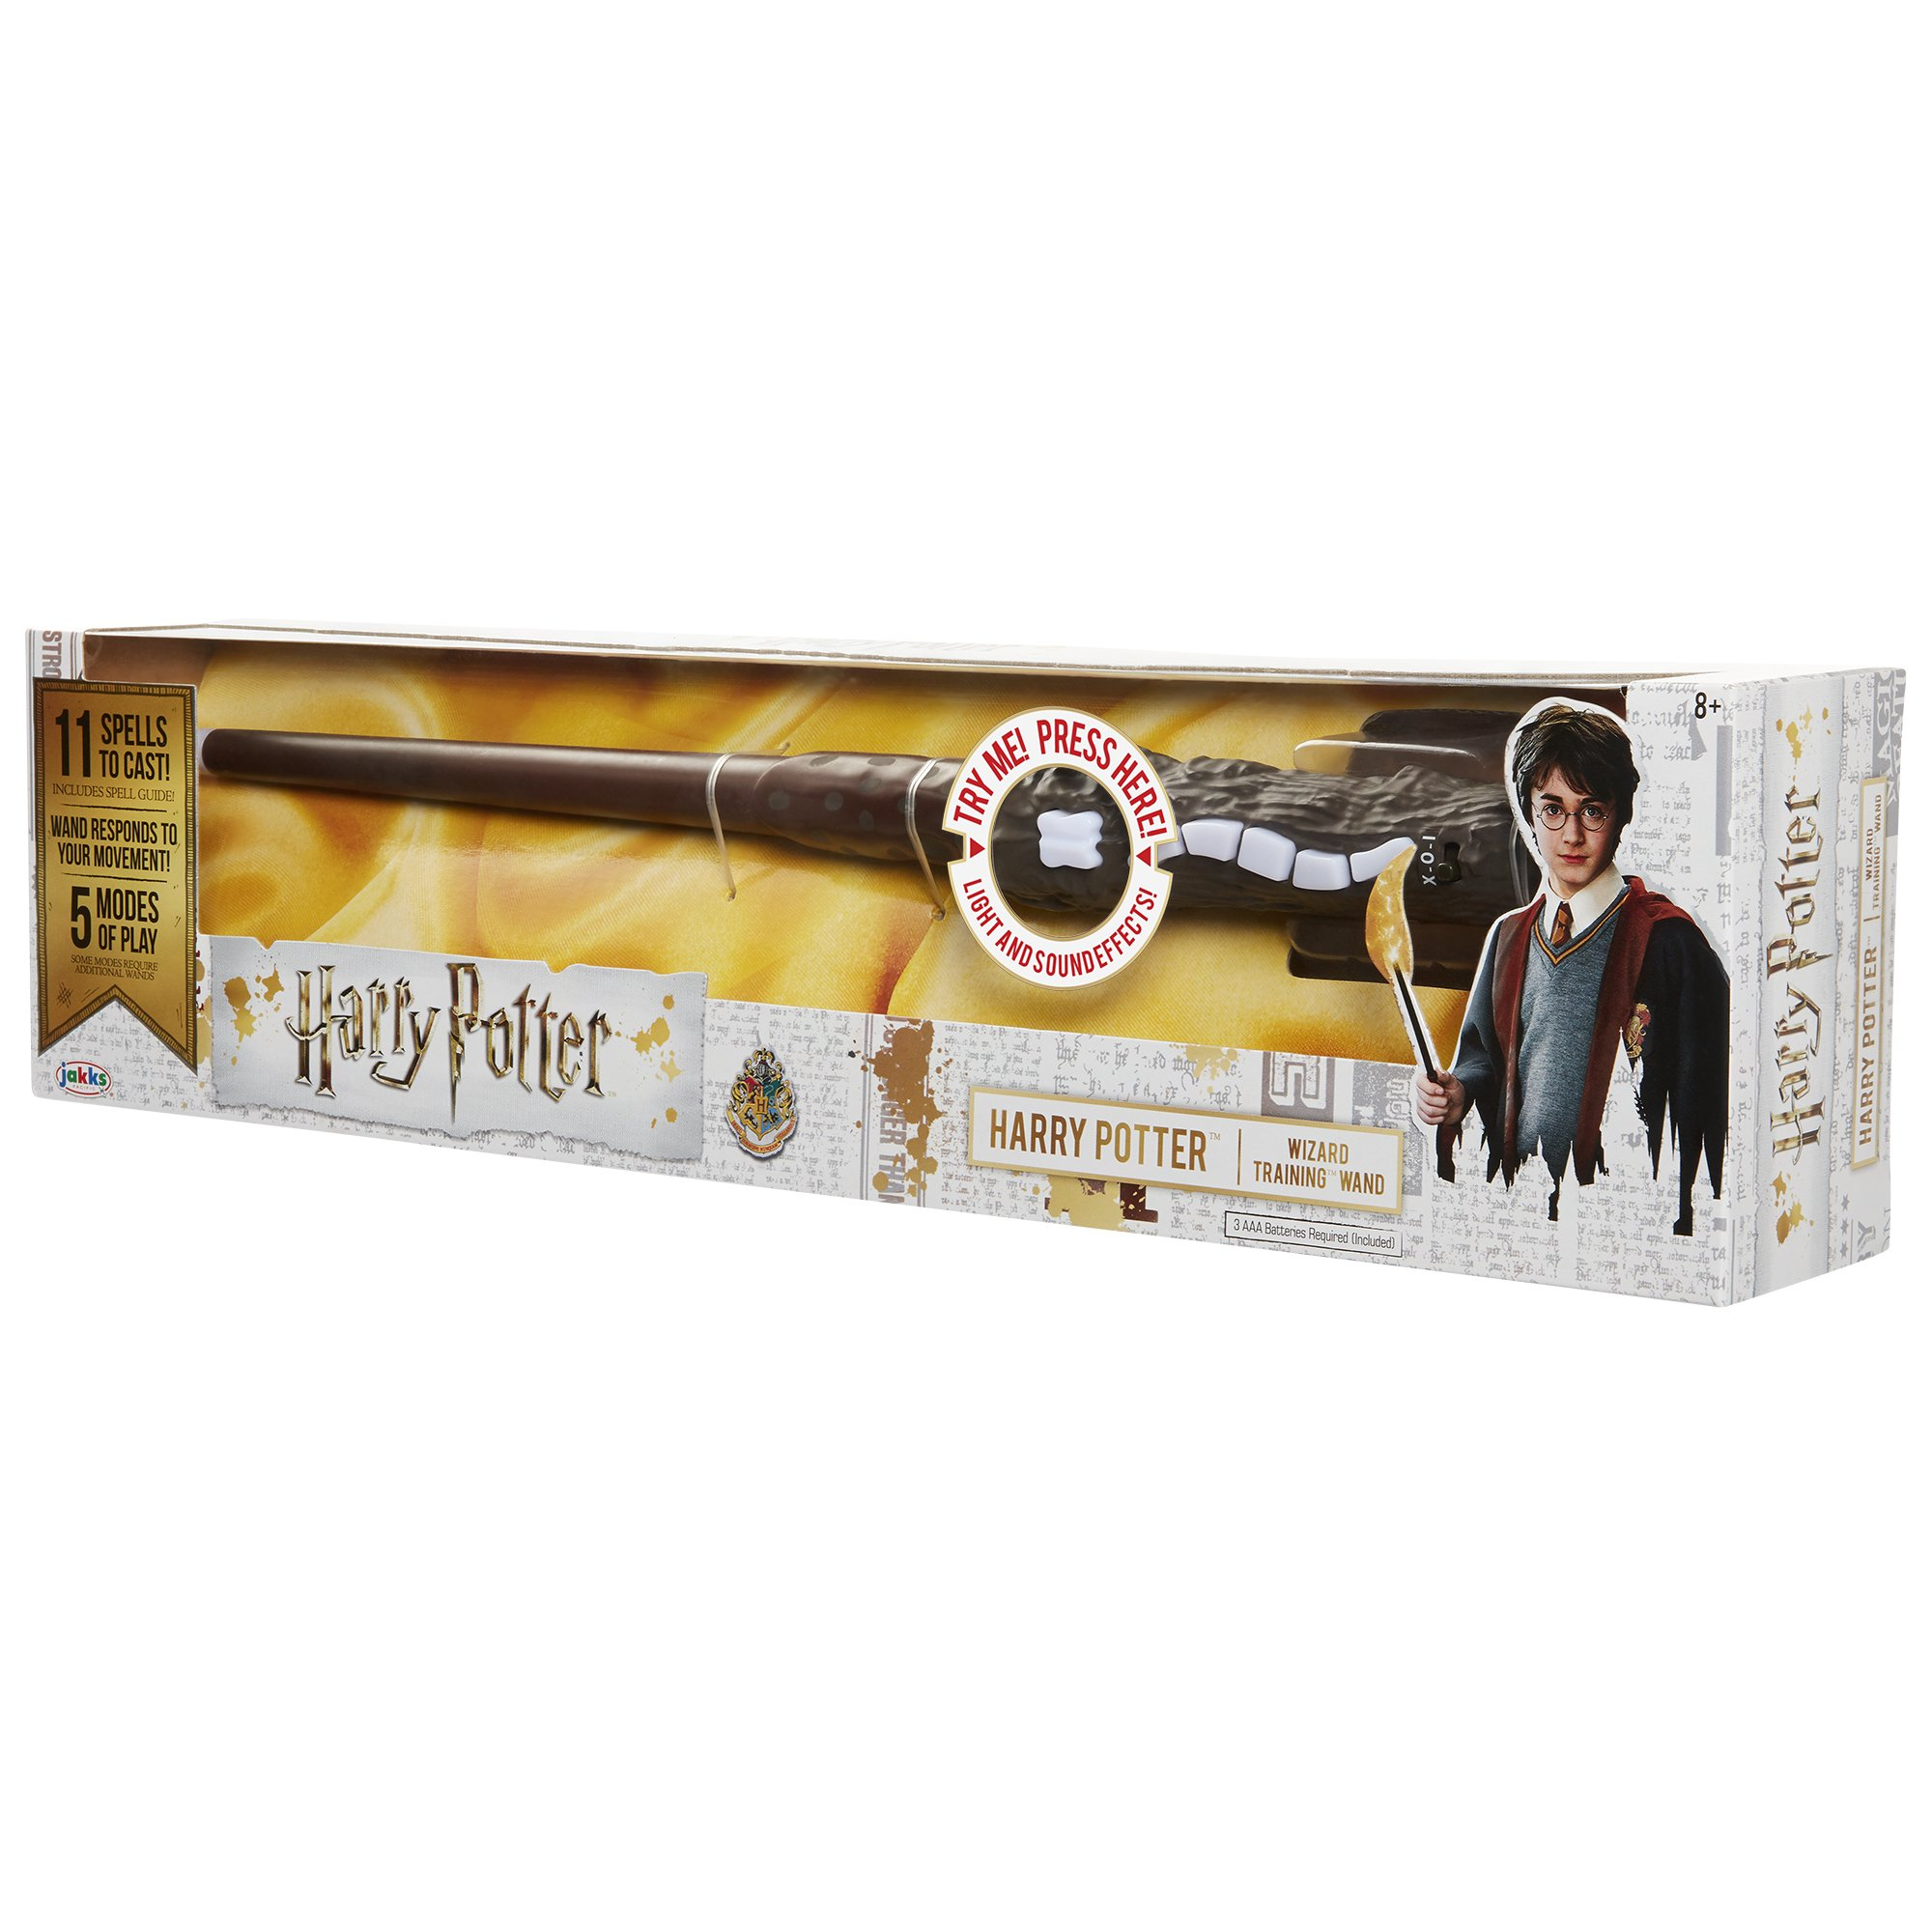 Harry Potter, Harry Potter's Wizard Training Wand - 11 SPELLS TO CAST! by HARRY POTTER (Image #14)